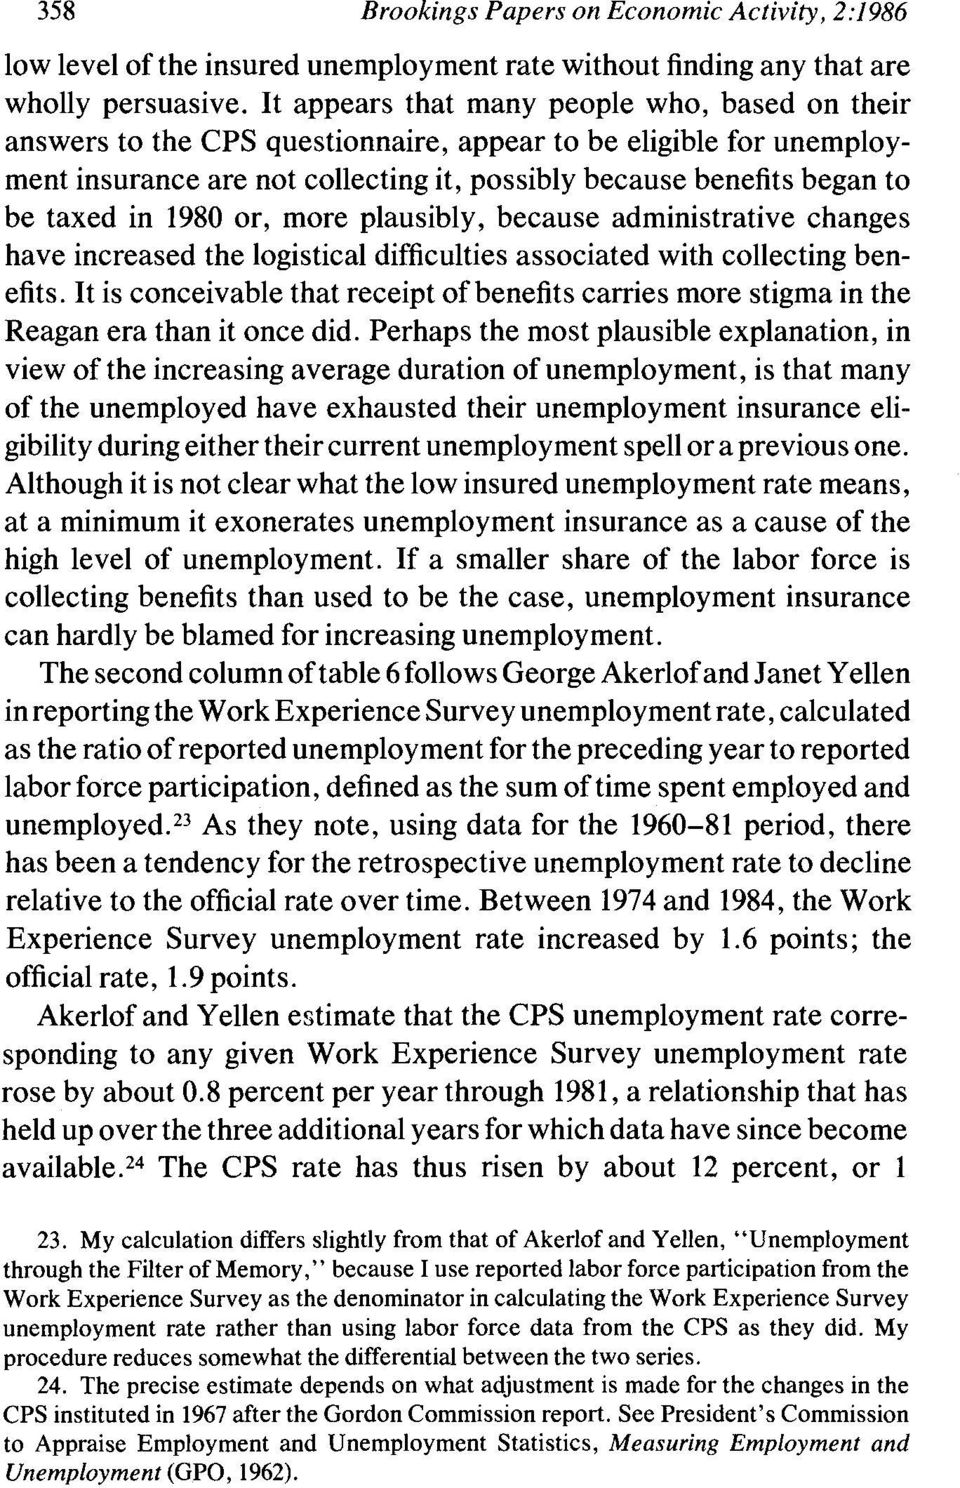 in 1980 or, more plausibly, because administrative changes have increased the logistical difficulties associated with collecting benefits.